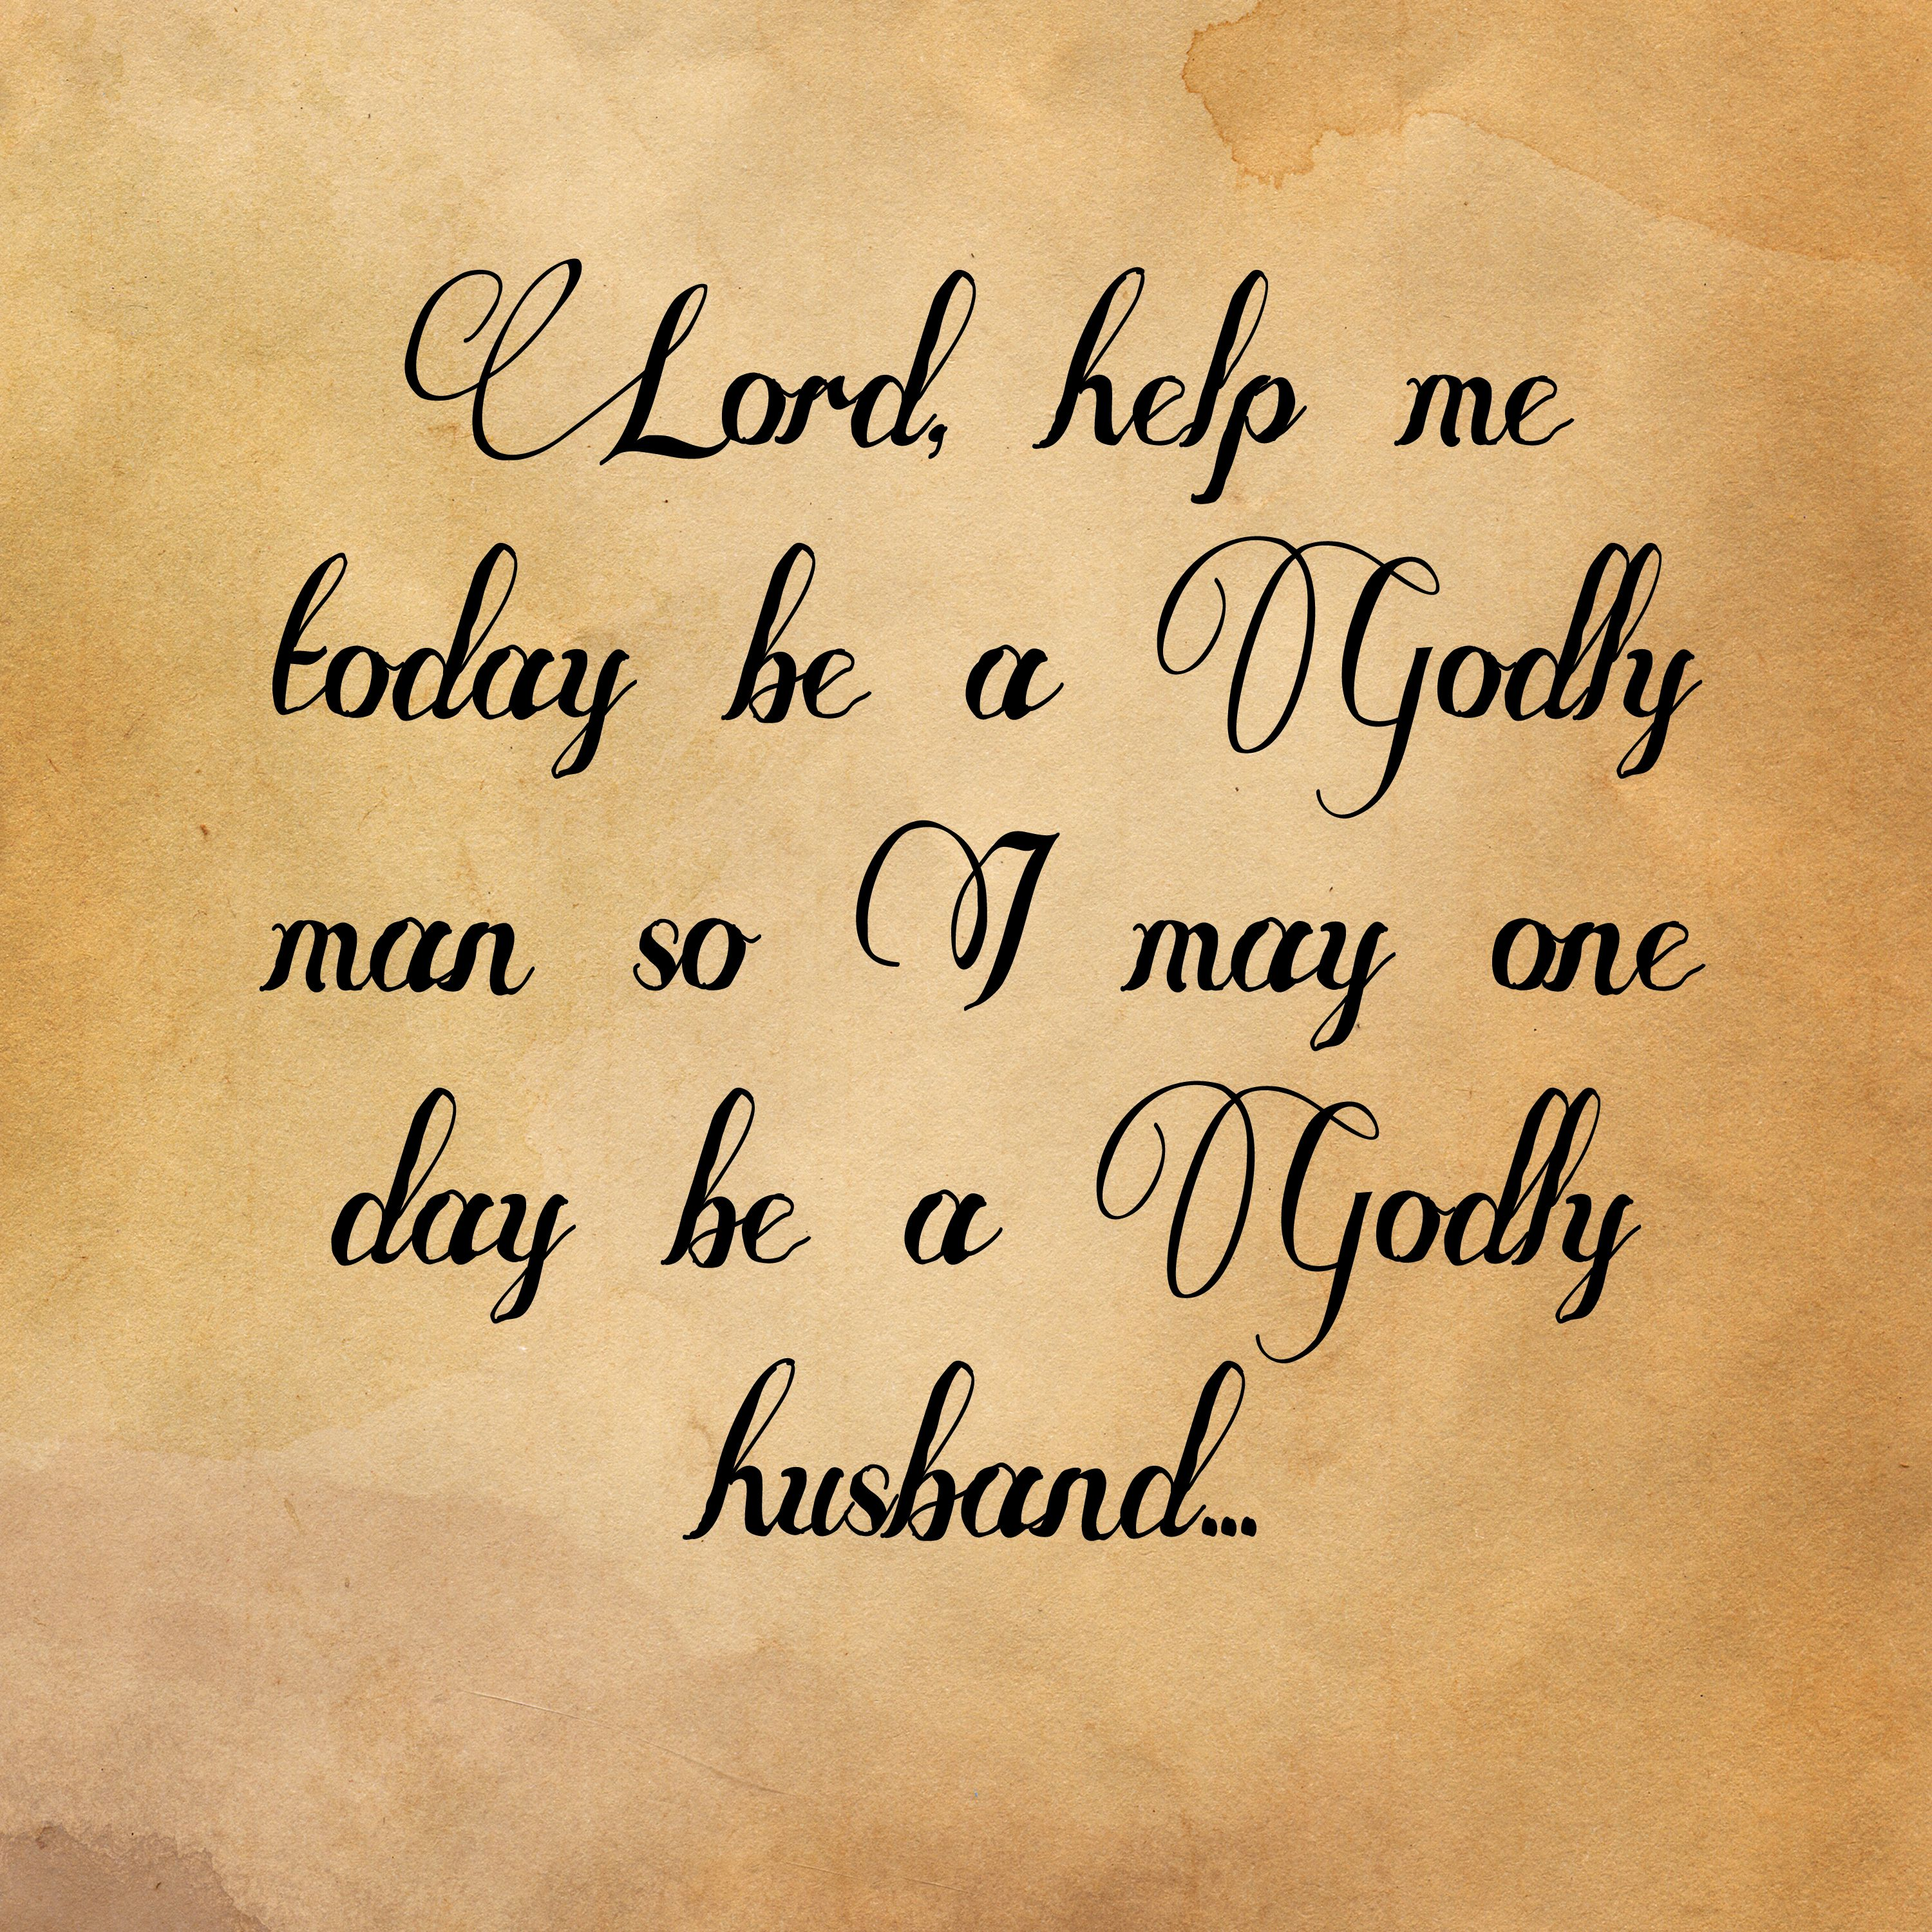 Christian Life Quotes To Be A Godly Man Goals  Pinterest  Godly Man Lord And